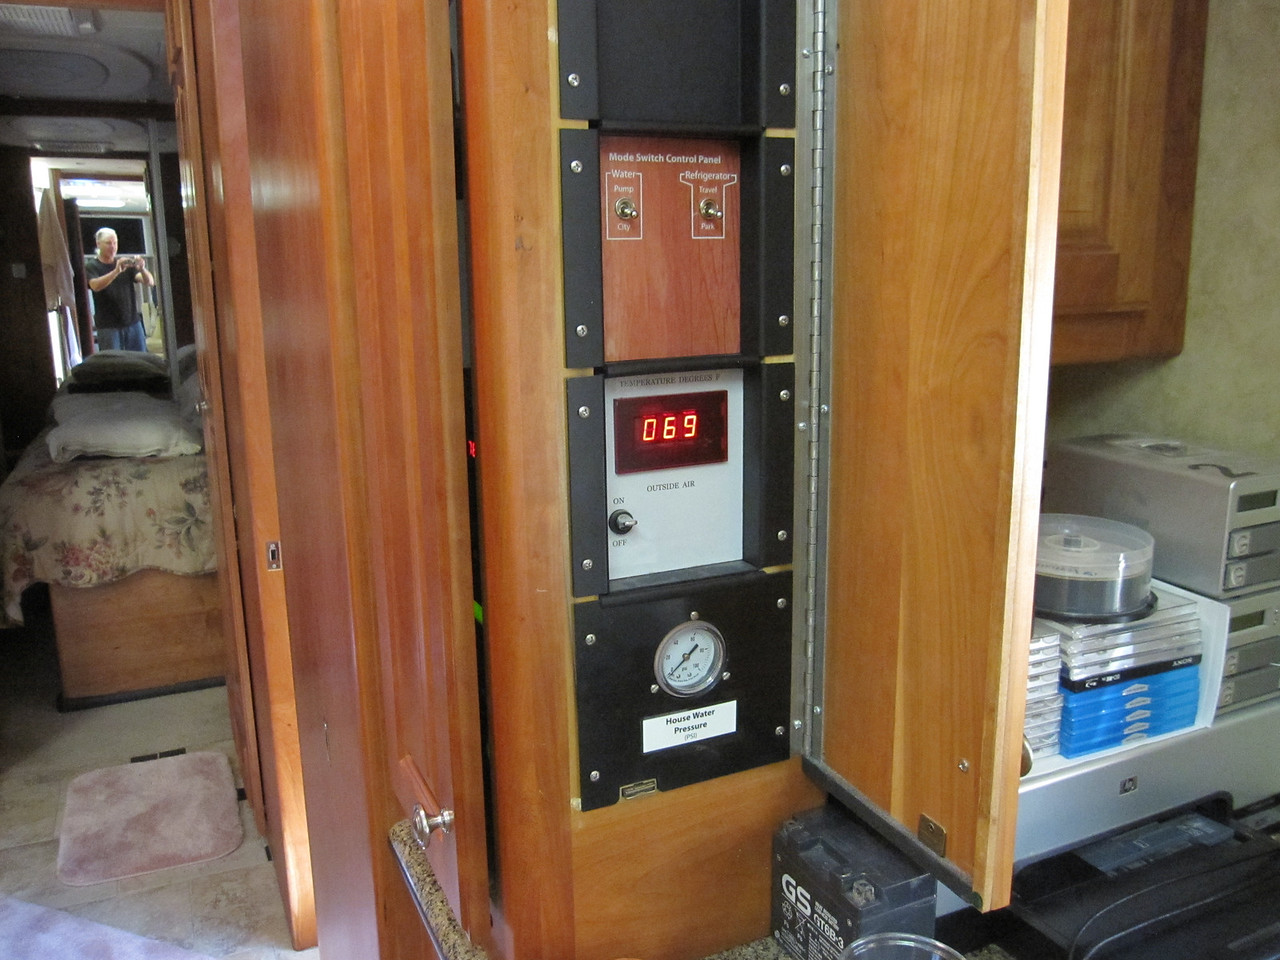 In the Allure model, this column above the pantry cabinet offers hidden space for mounting instruments, dials, gauges and controls.  I outfitted mine with removable modular panels to be appointed as required.  Some spare ones still exist.